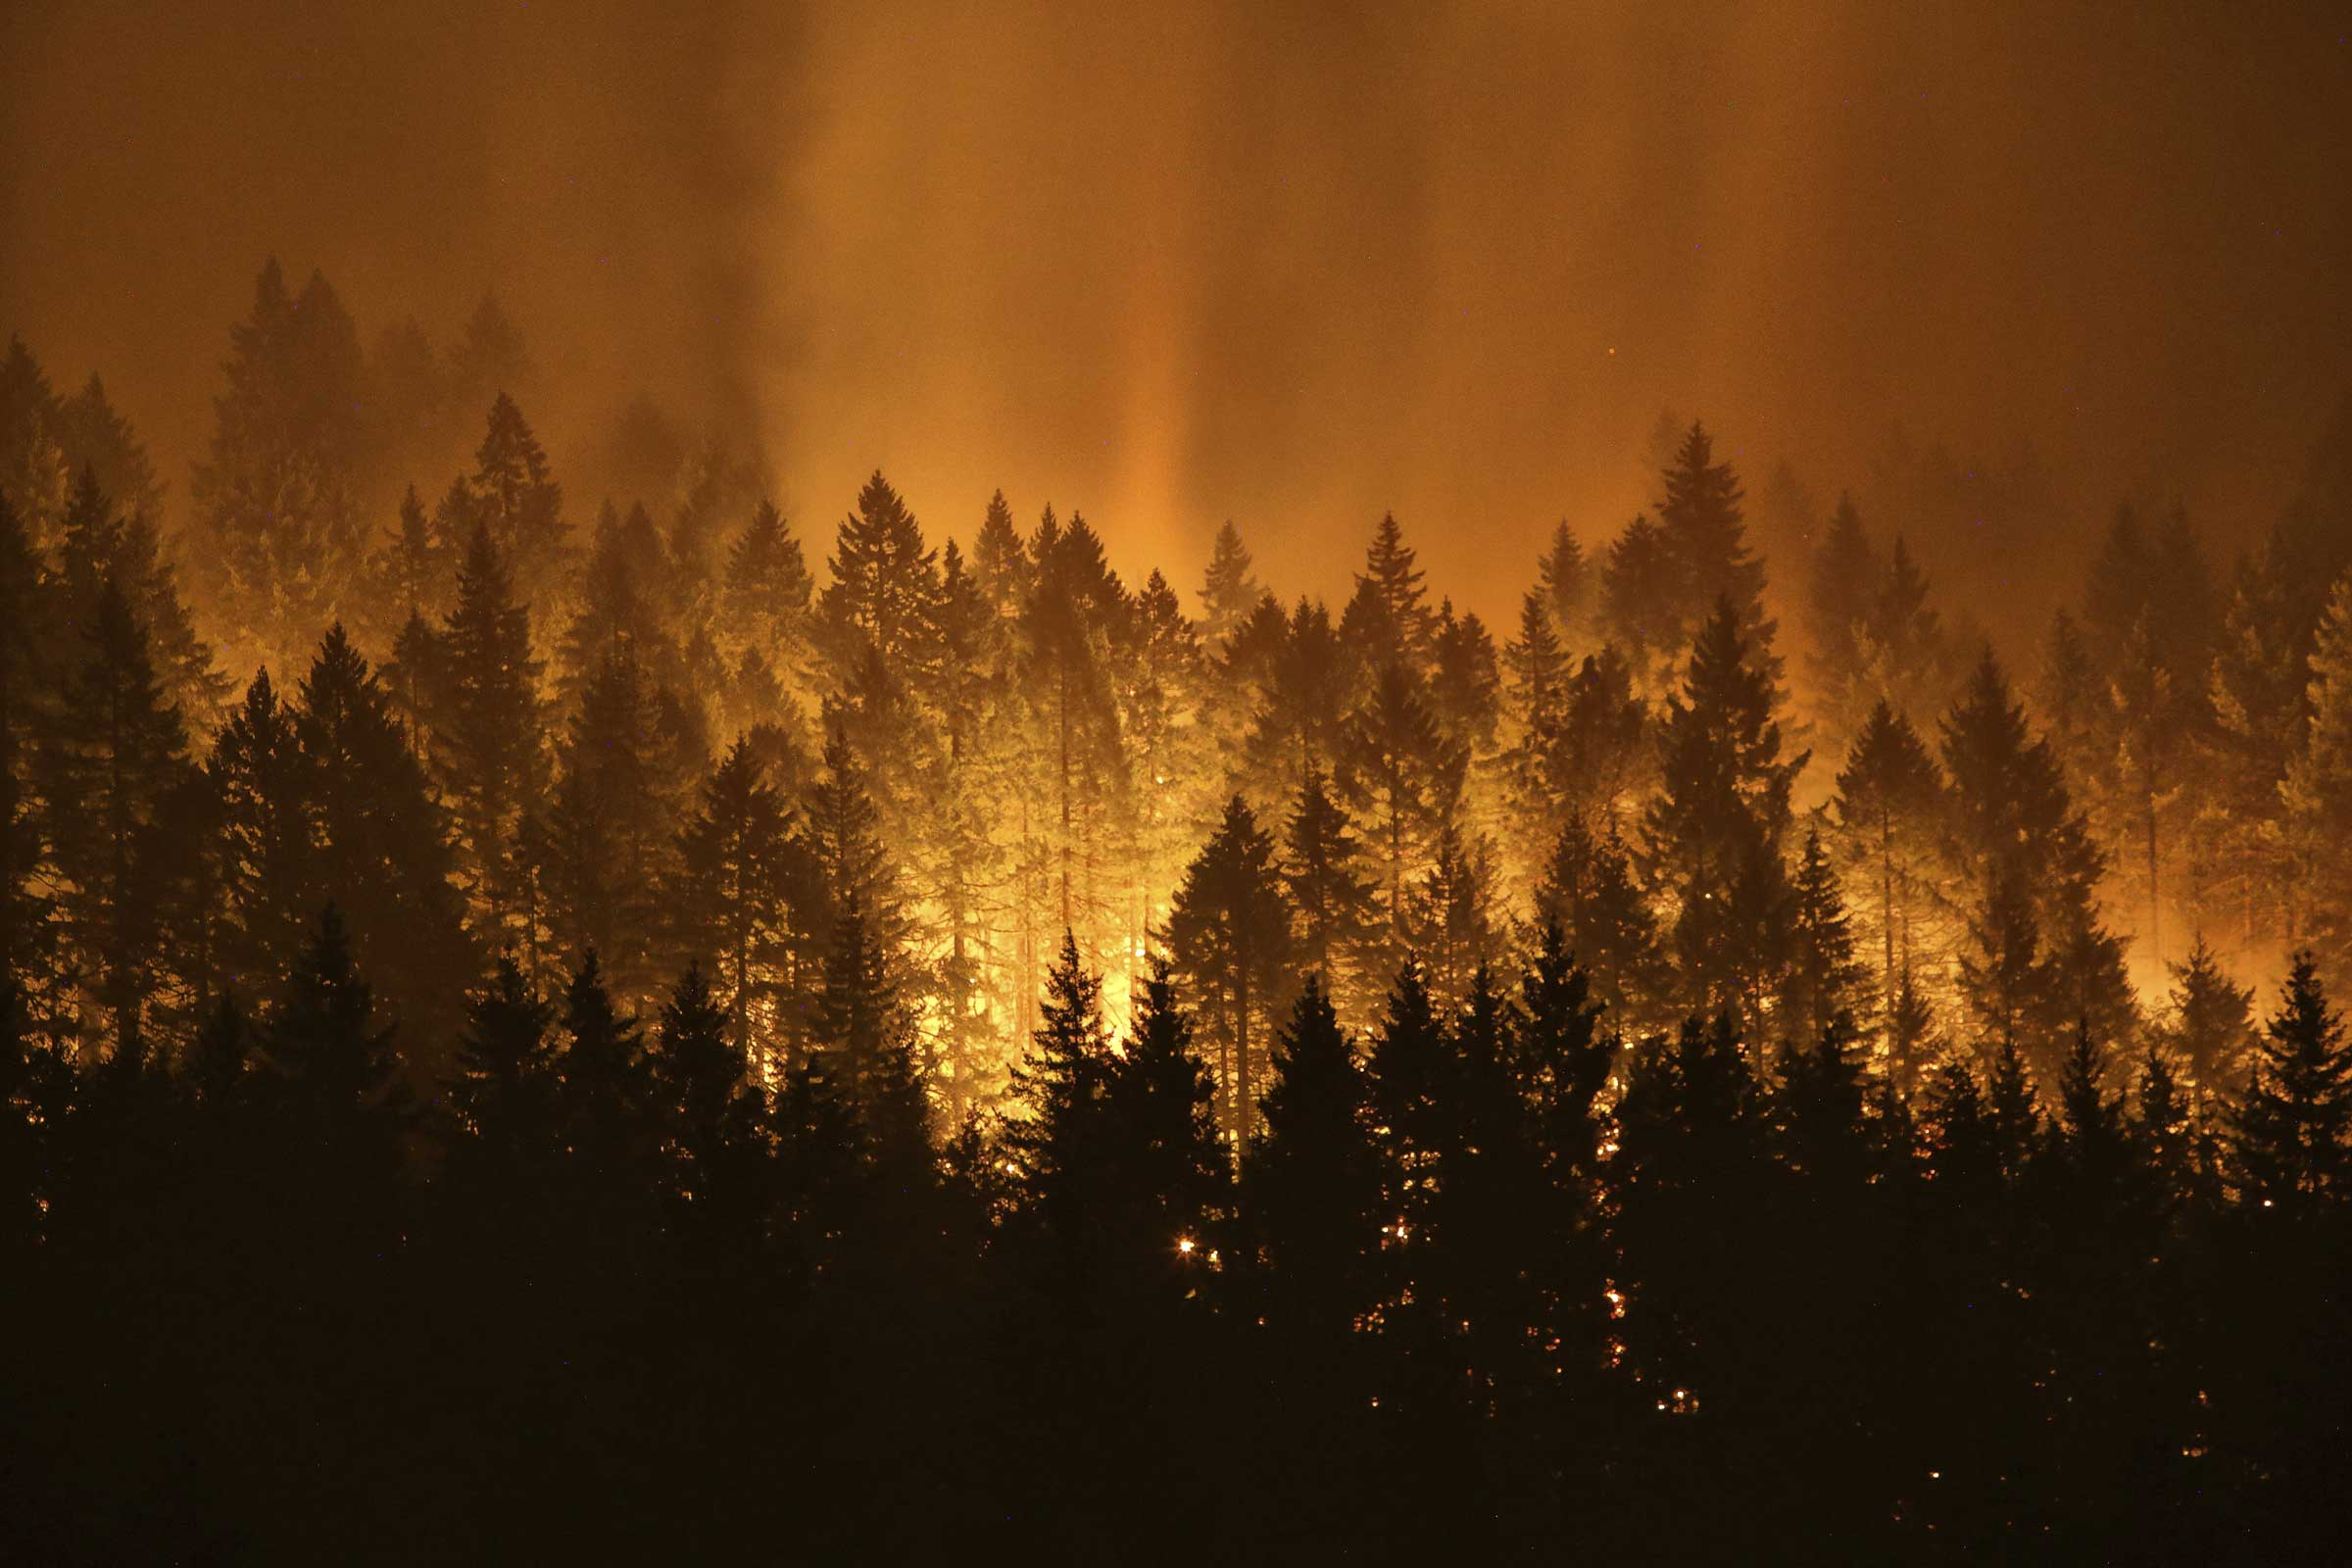 A wildfire tore through Oregon's Columbia River Gorge near Cascade Locks and Bridge of the Gods in early September. (Genna Martin/seattlepi.com via AP)